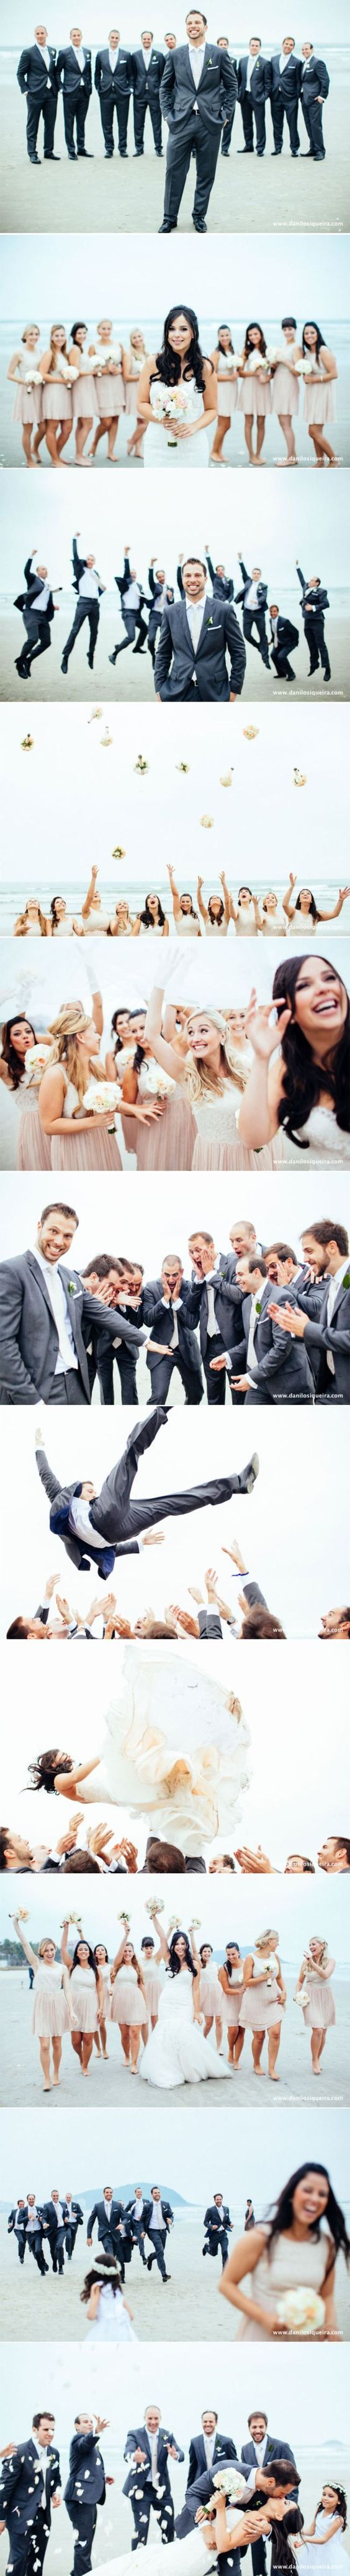 Bridesmaids and groomsmen - beautiful pictures!: